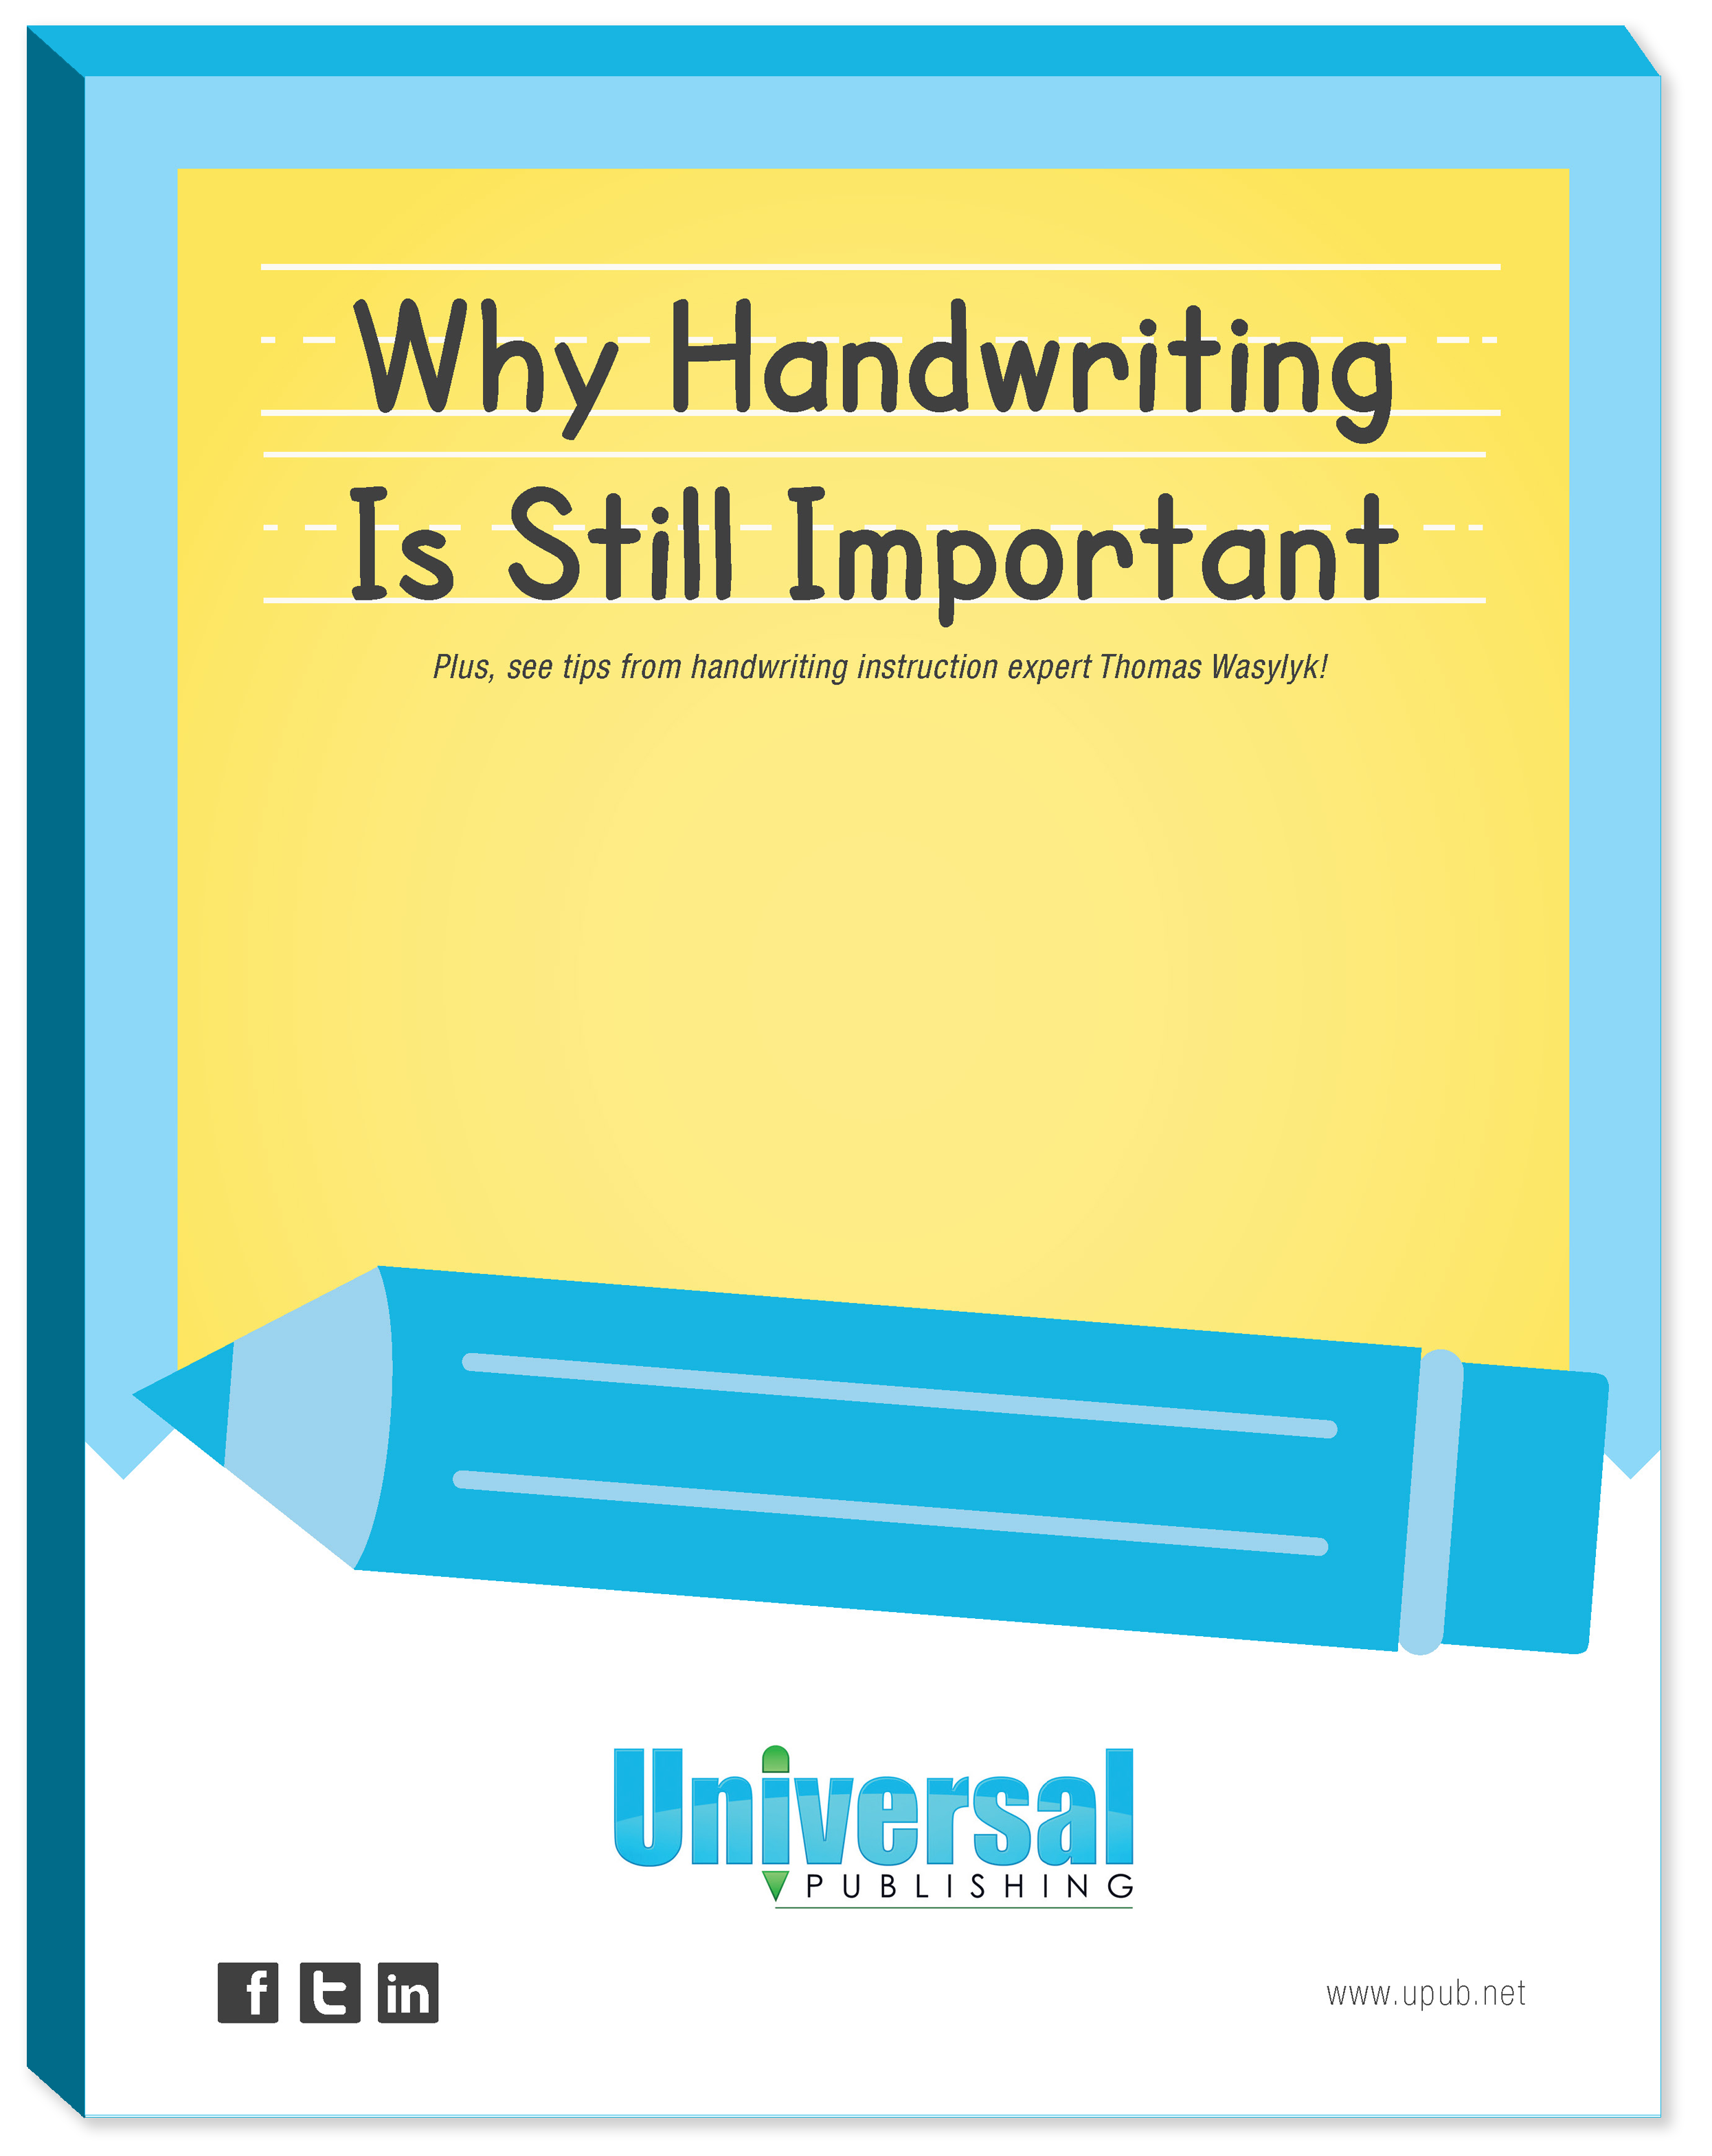 Why-Handwriting-Important-Ebook-Cover